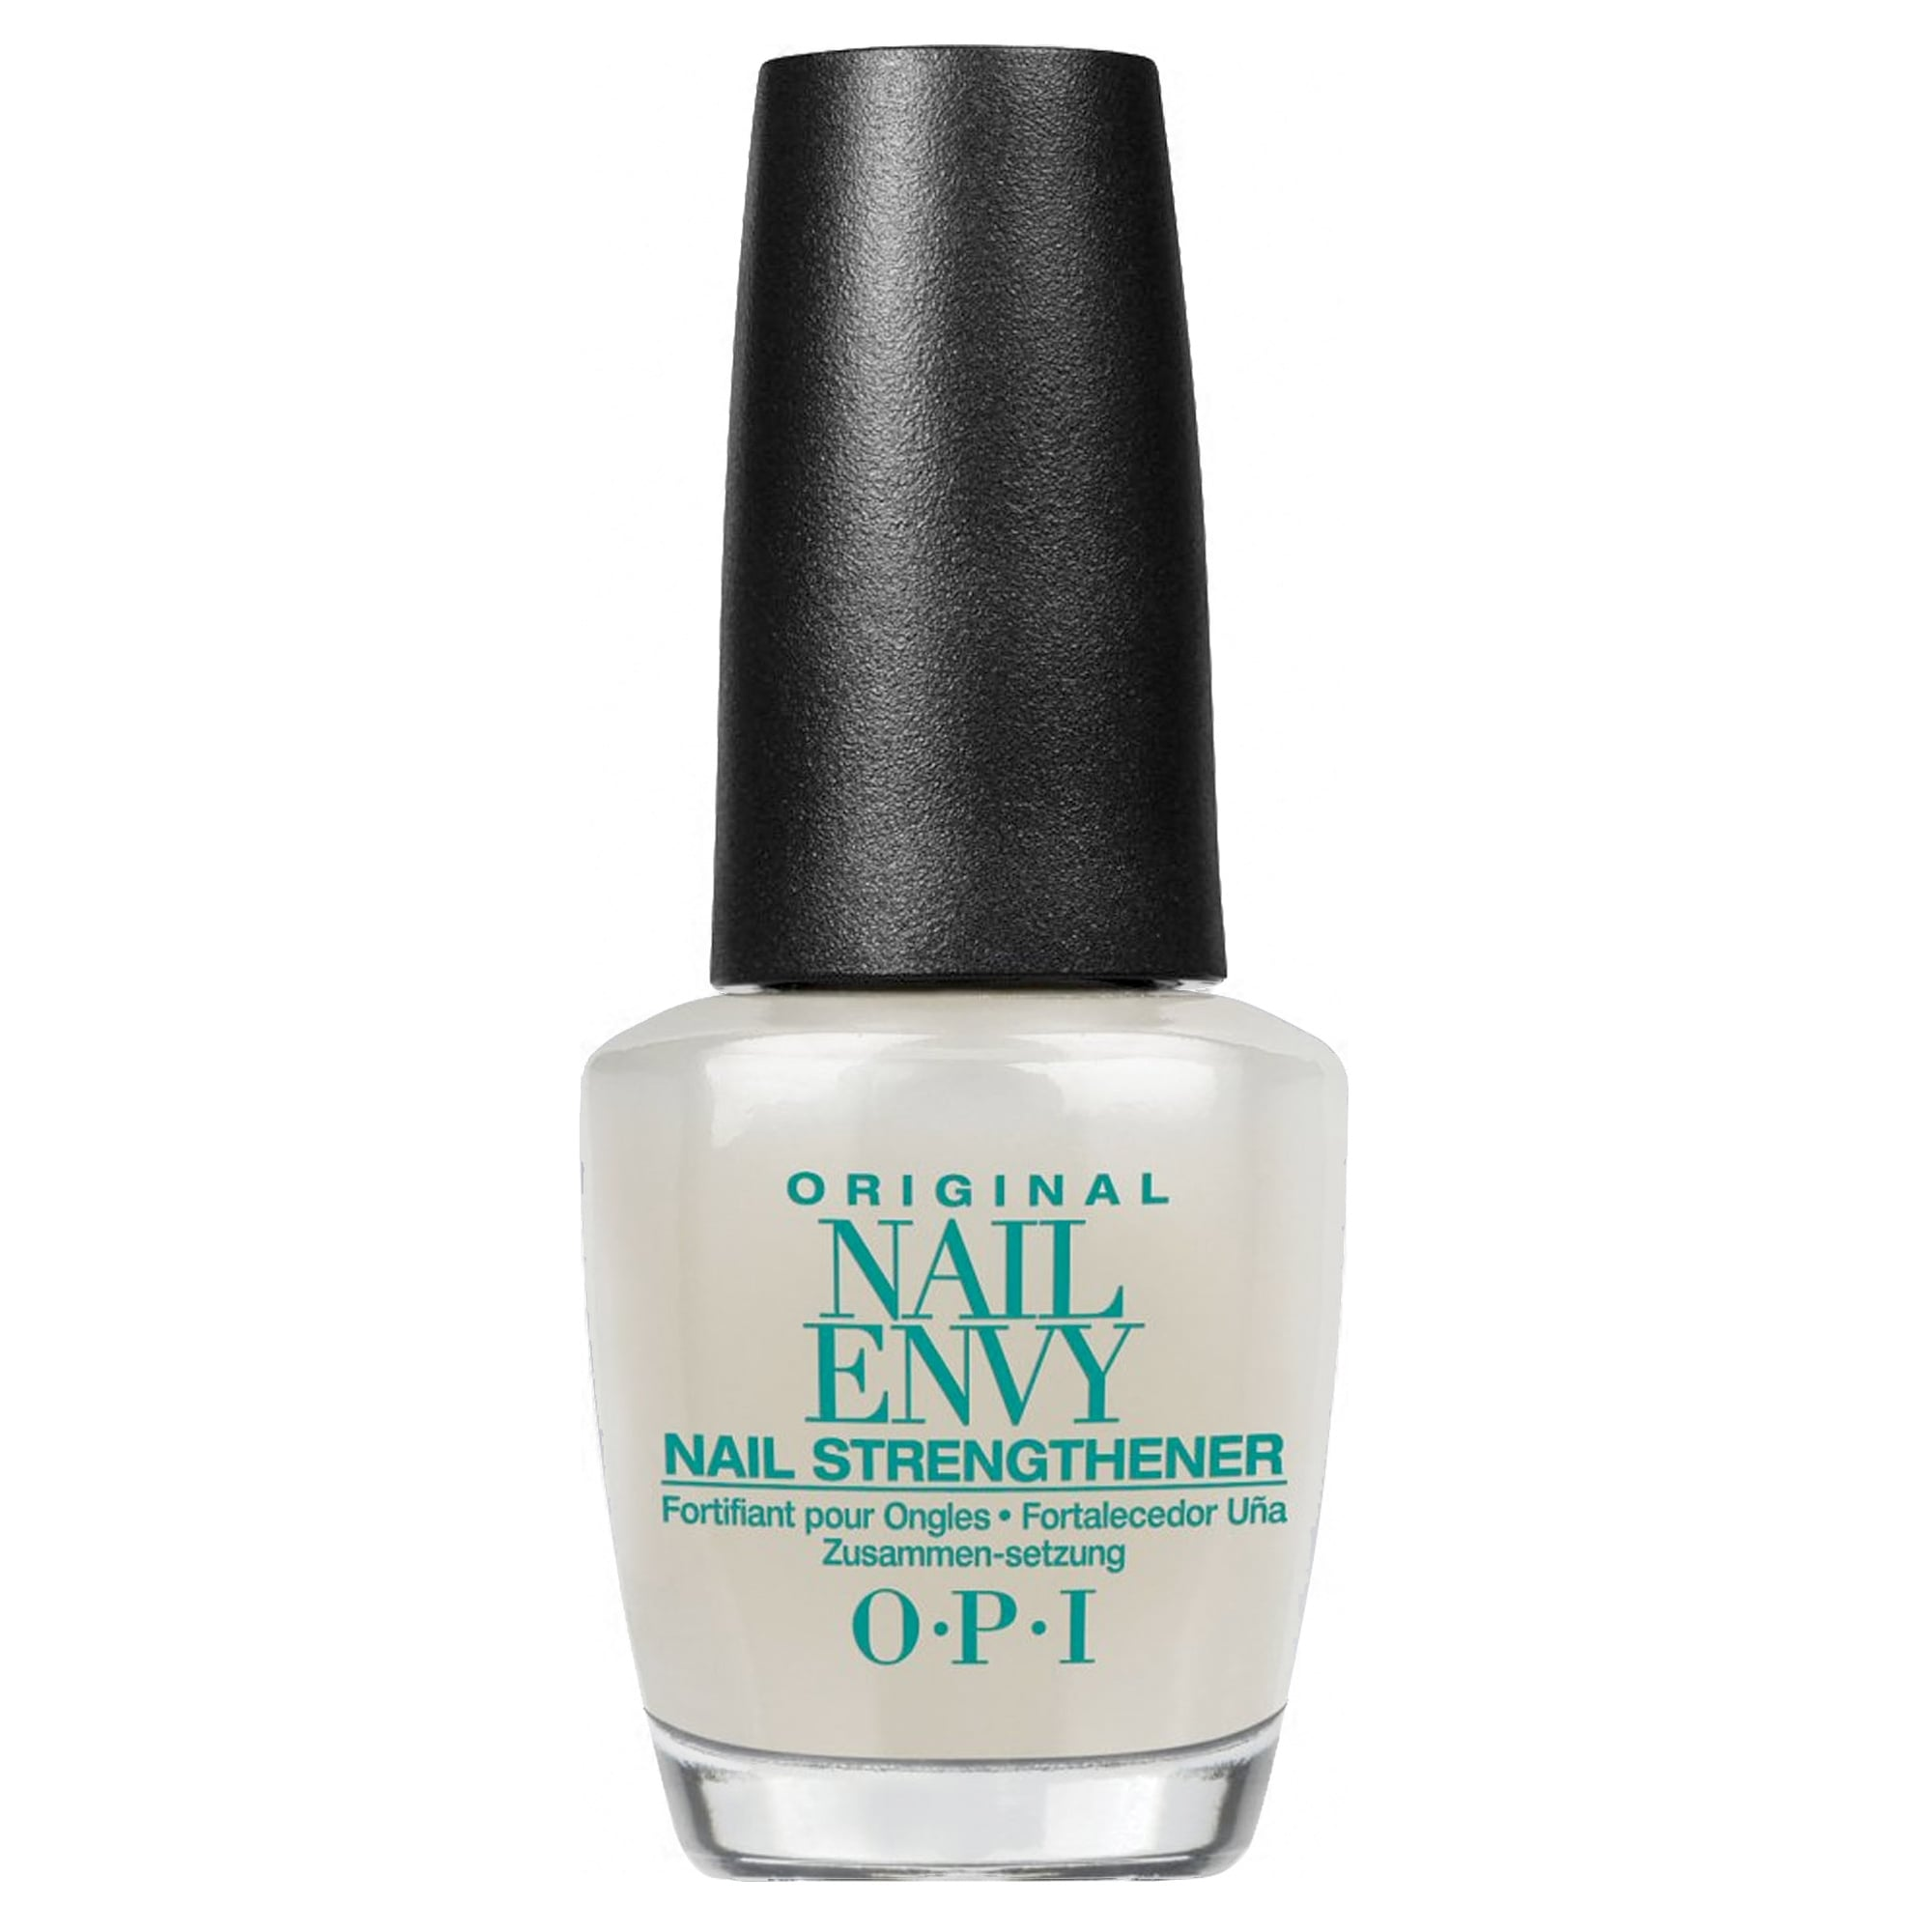 OPI Mini Treat Nail Envy - Original Formula 3.75ml